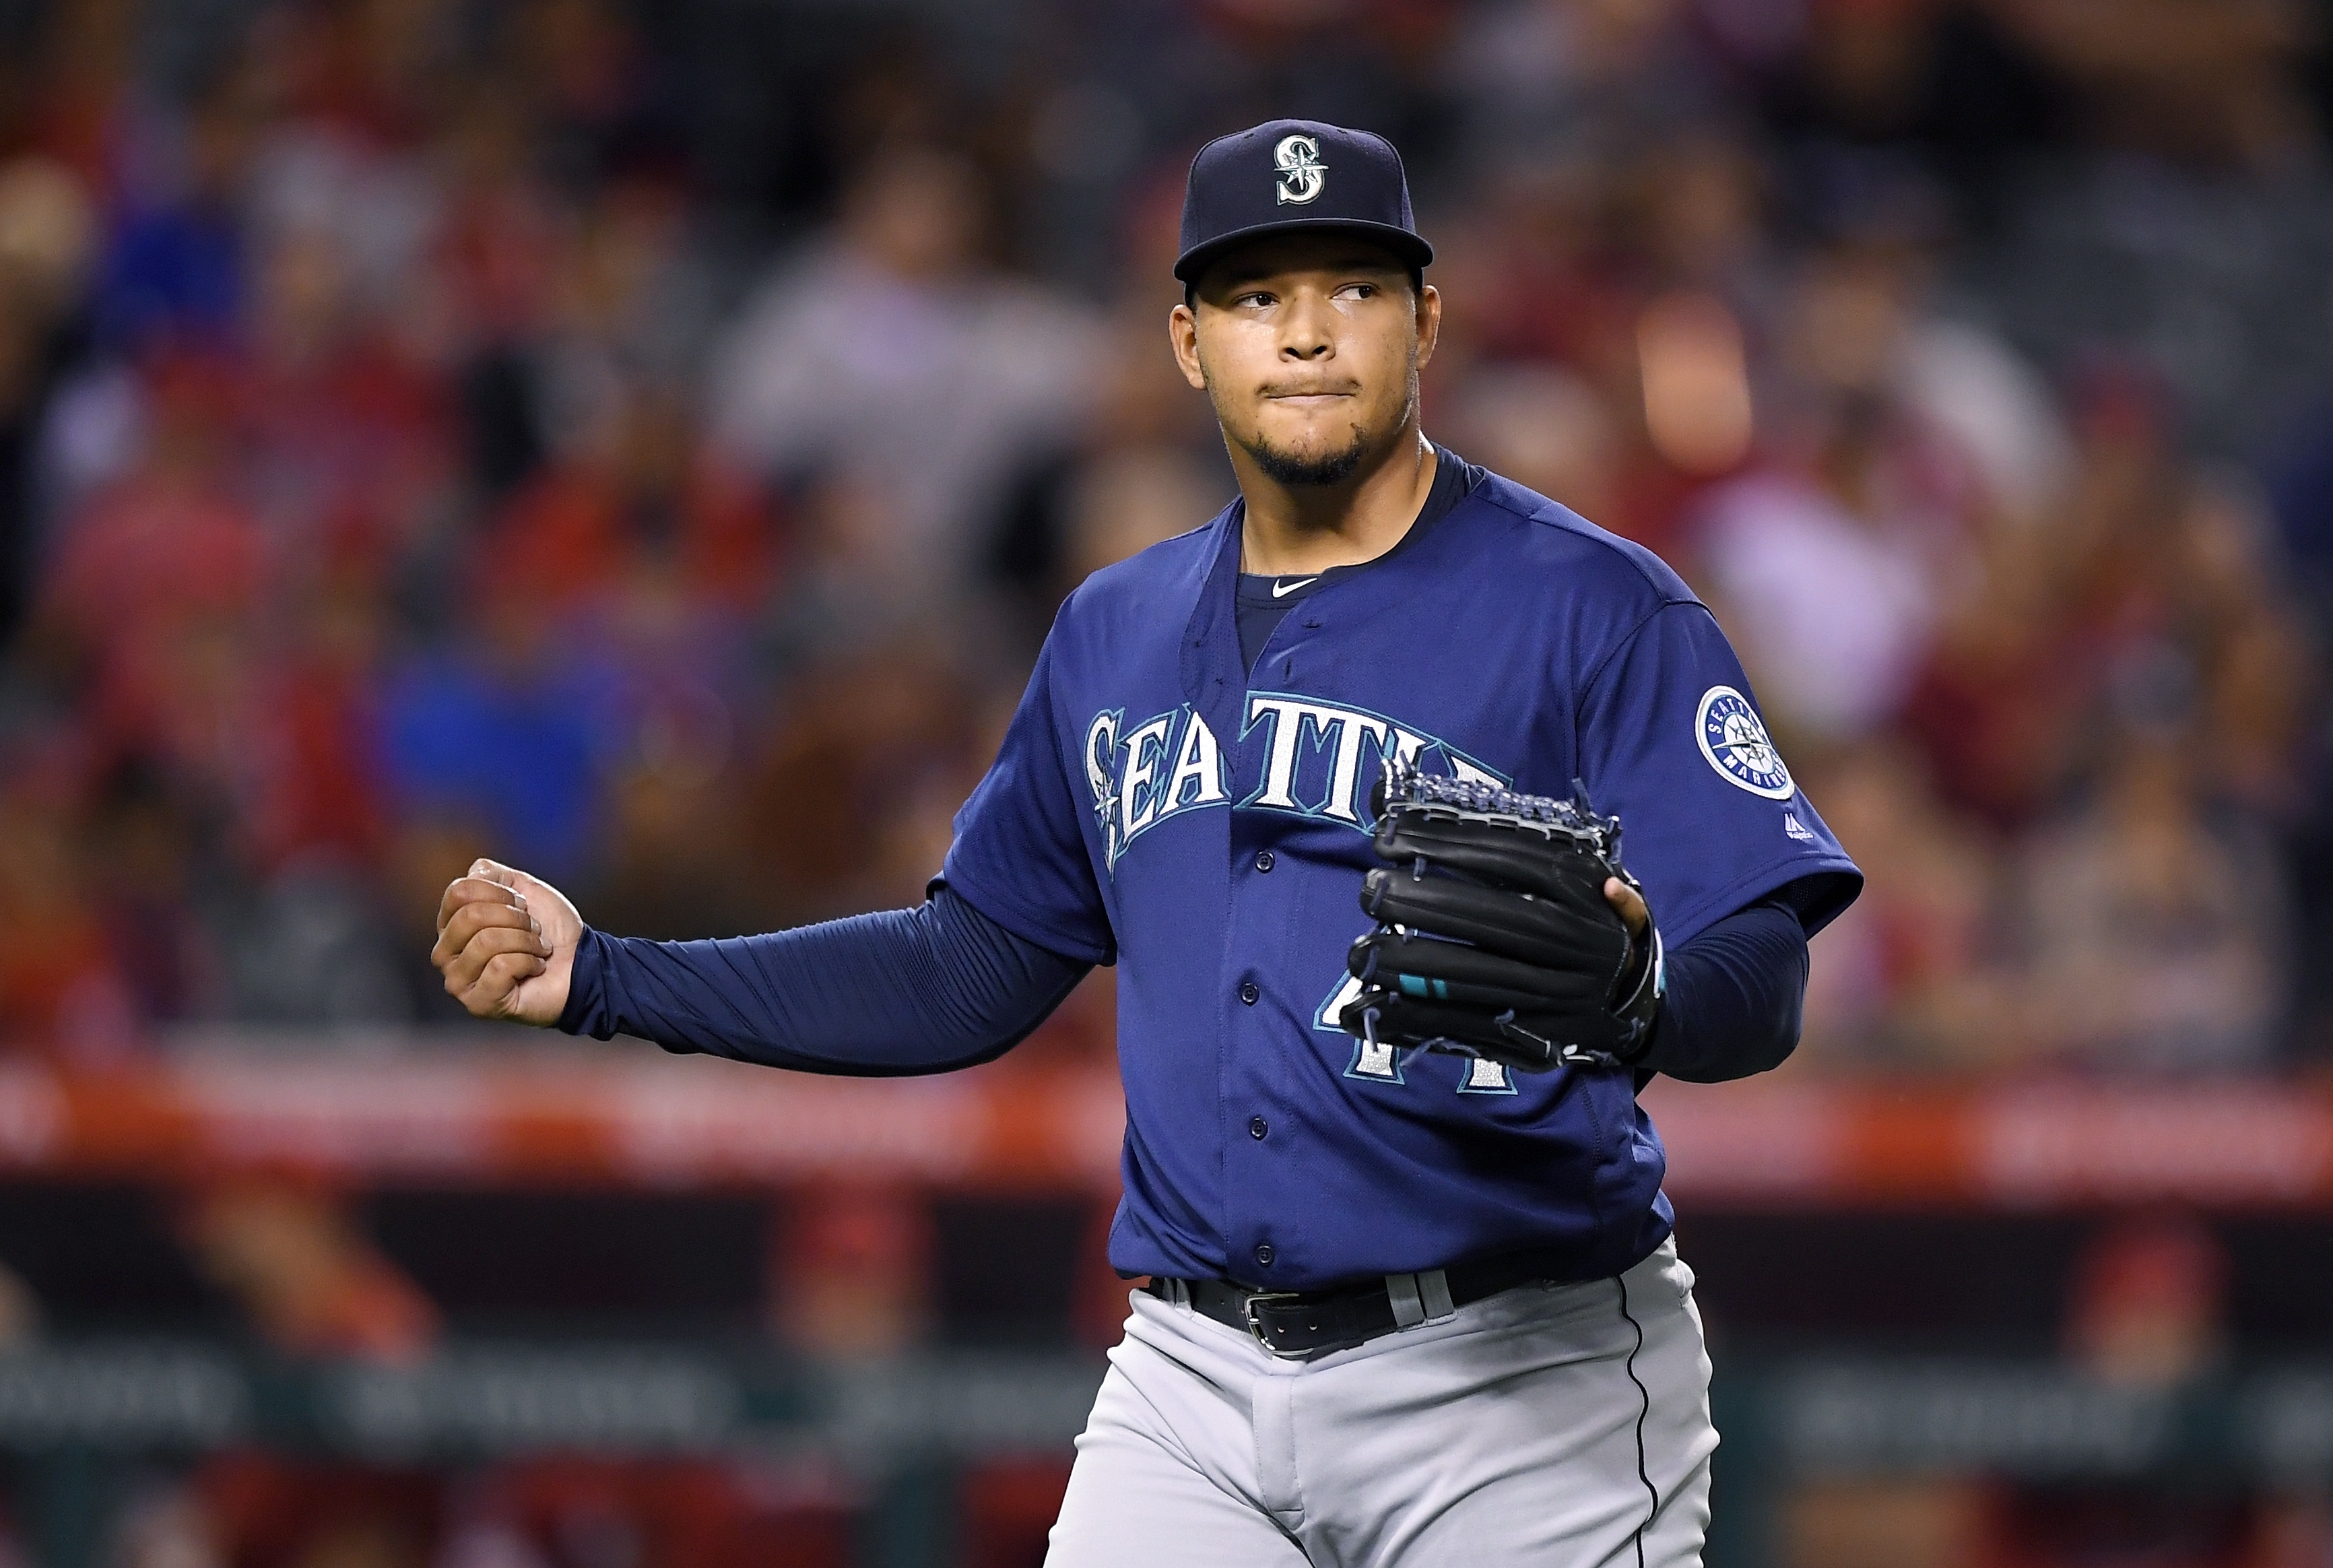 Seattle Mariners starting pitcher Taijuan Walker claps after finishing the fifth inning of a baseball game against the Los Angeles Angels, Tuesday, Sept. 13, 2016, in Anaheim, Calif. (AP Photo/Mark J. Terrill)